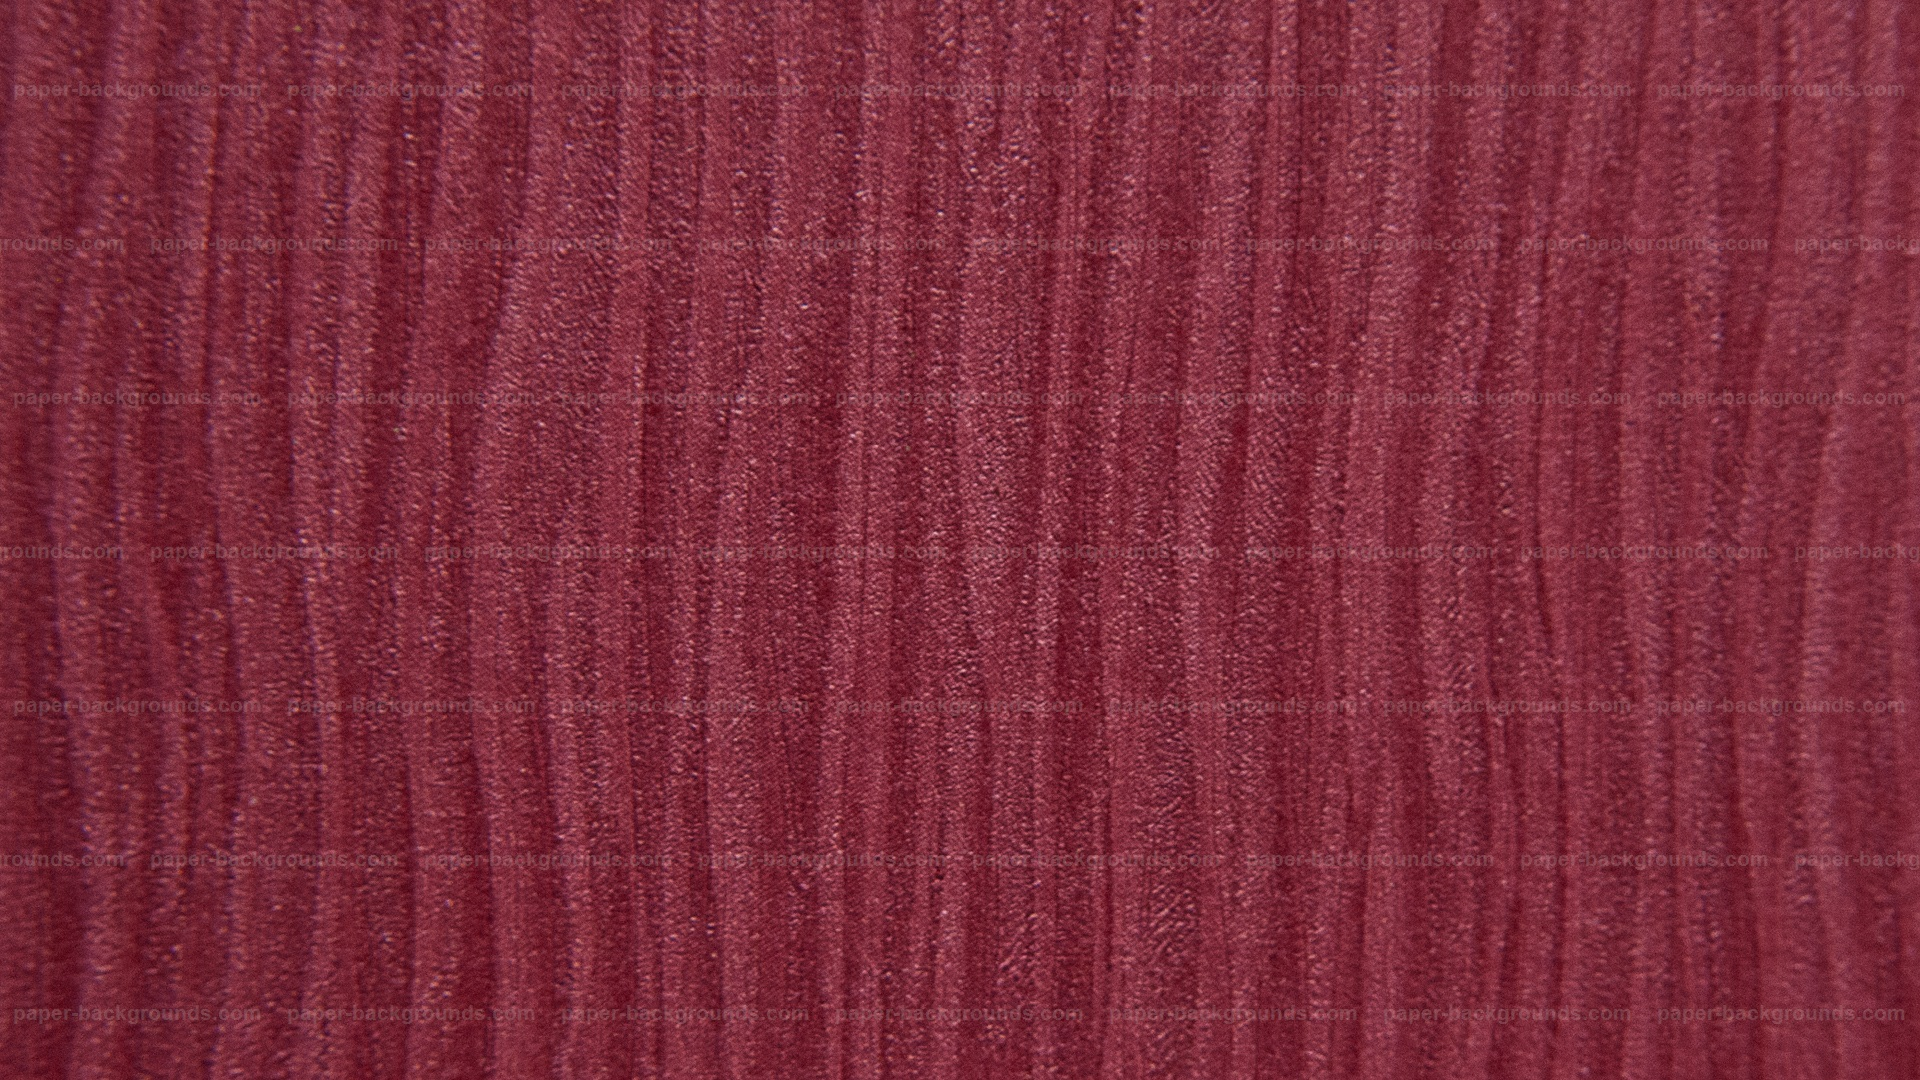 Red Wall Carpet Texture Background HD